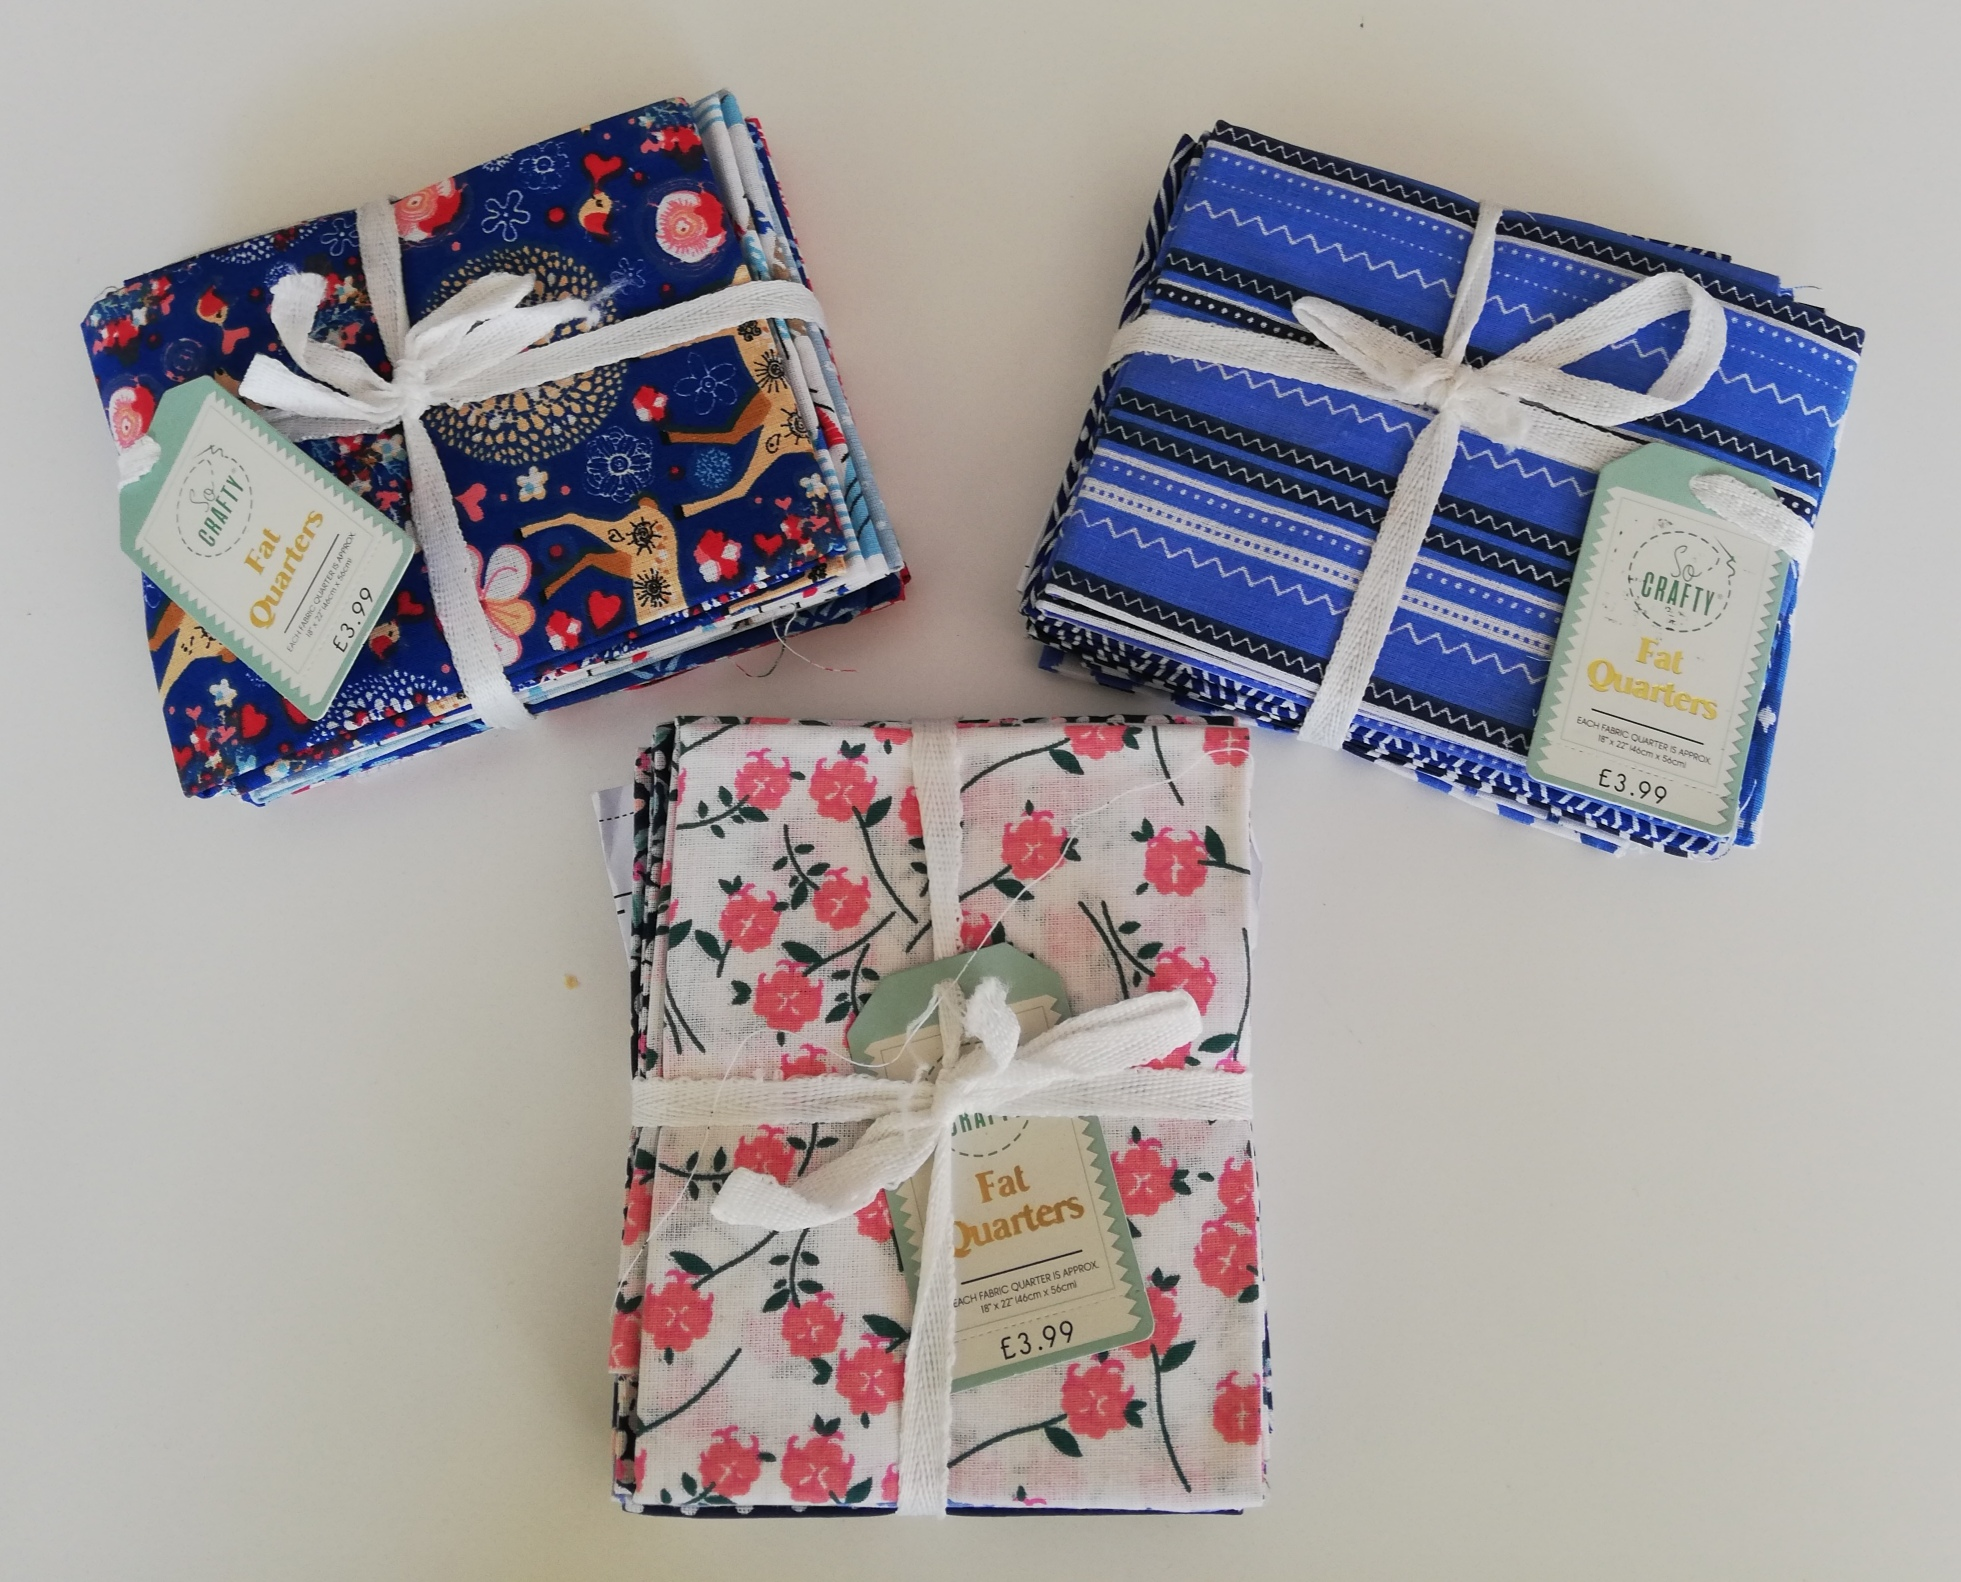 Fat Quarters (new stock received)